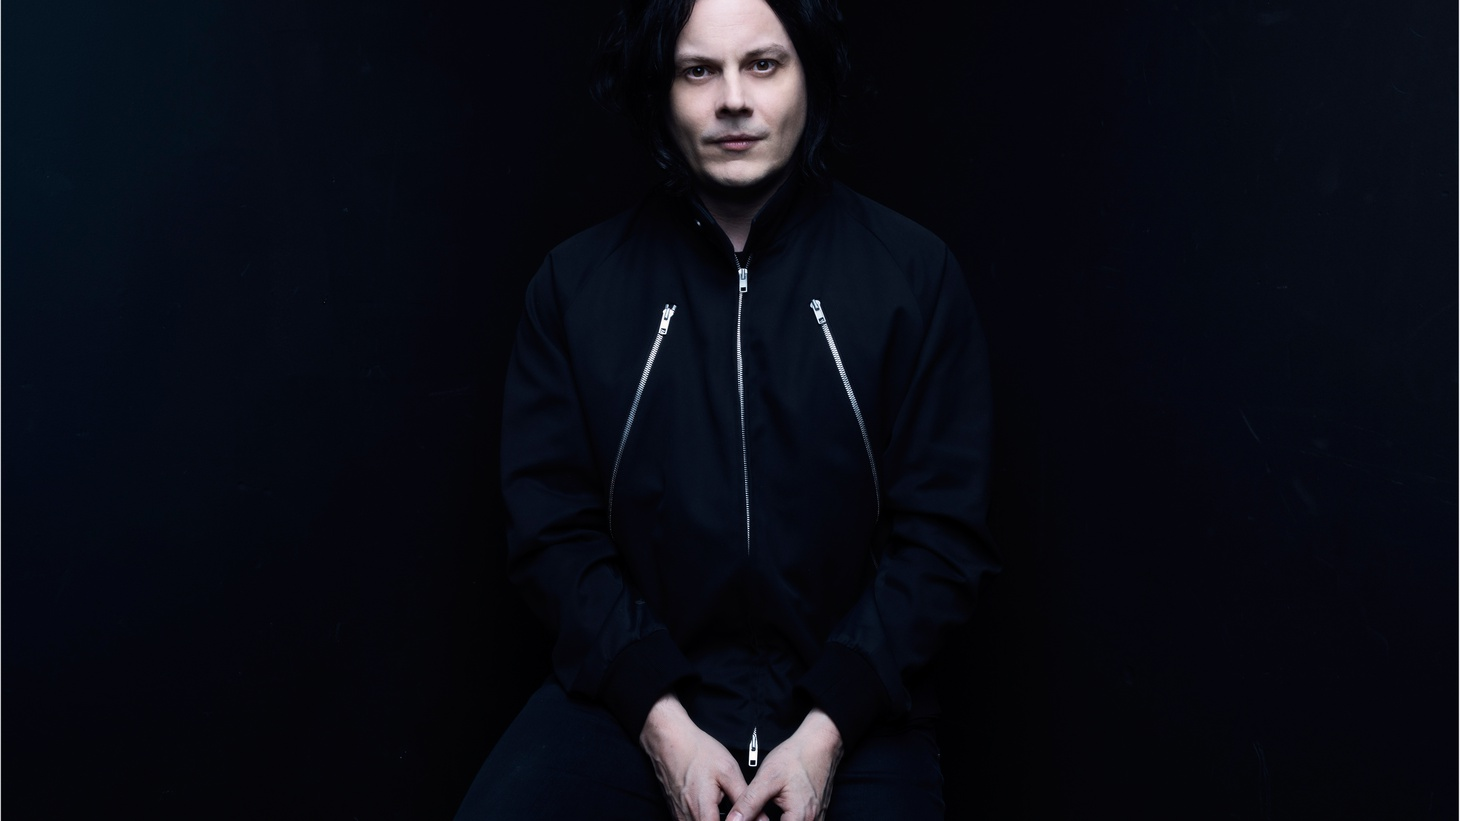 We air a live session with Jack White at 10am to celebrate the release of his new album Boarding House Reach. This will be one of his first live radio sessions behind this album and one of his first live performances in 4 years.